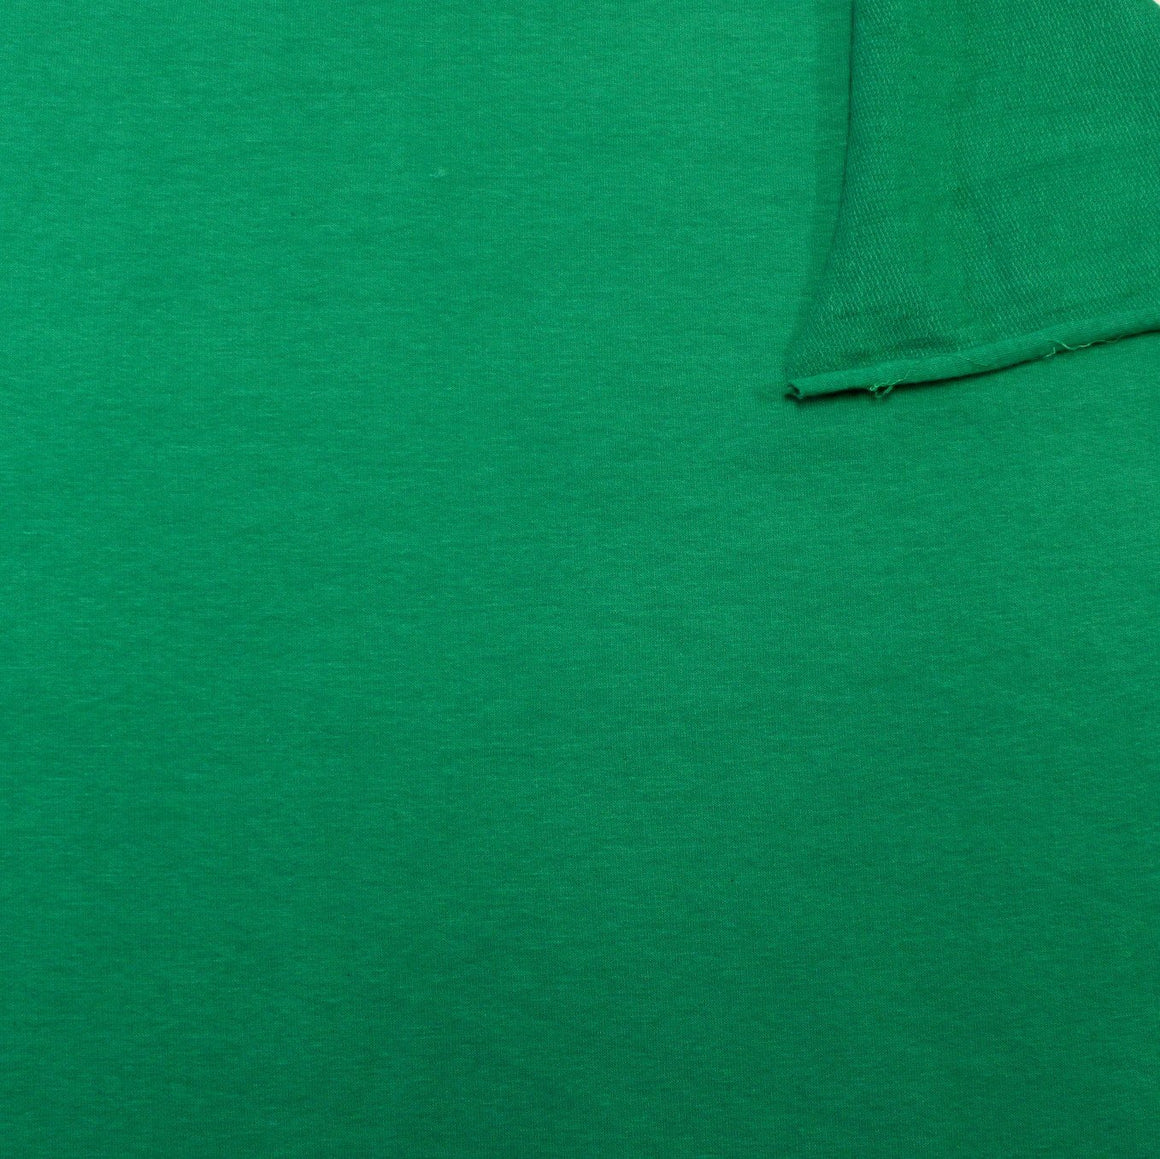 Solid Kelly Green 4 Way Stretch French Terry Knit Fabric With Spandex, 1 Yard